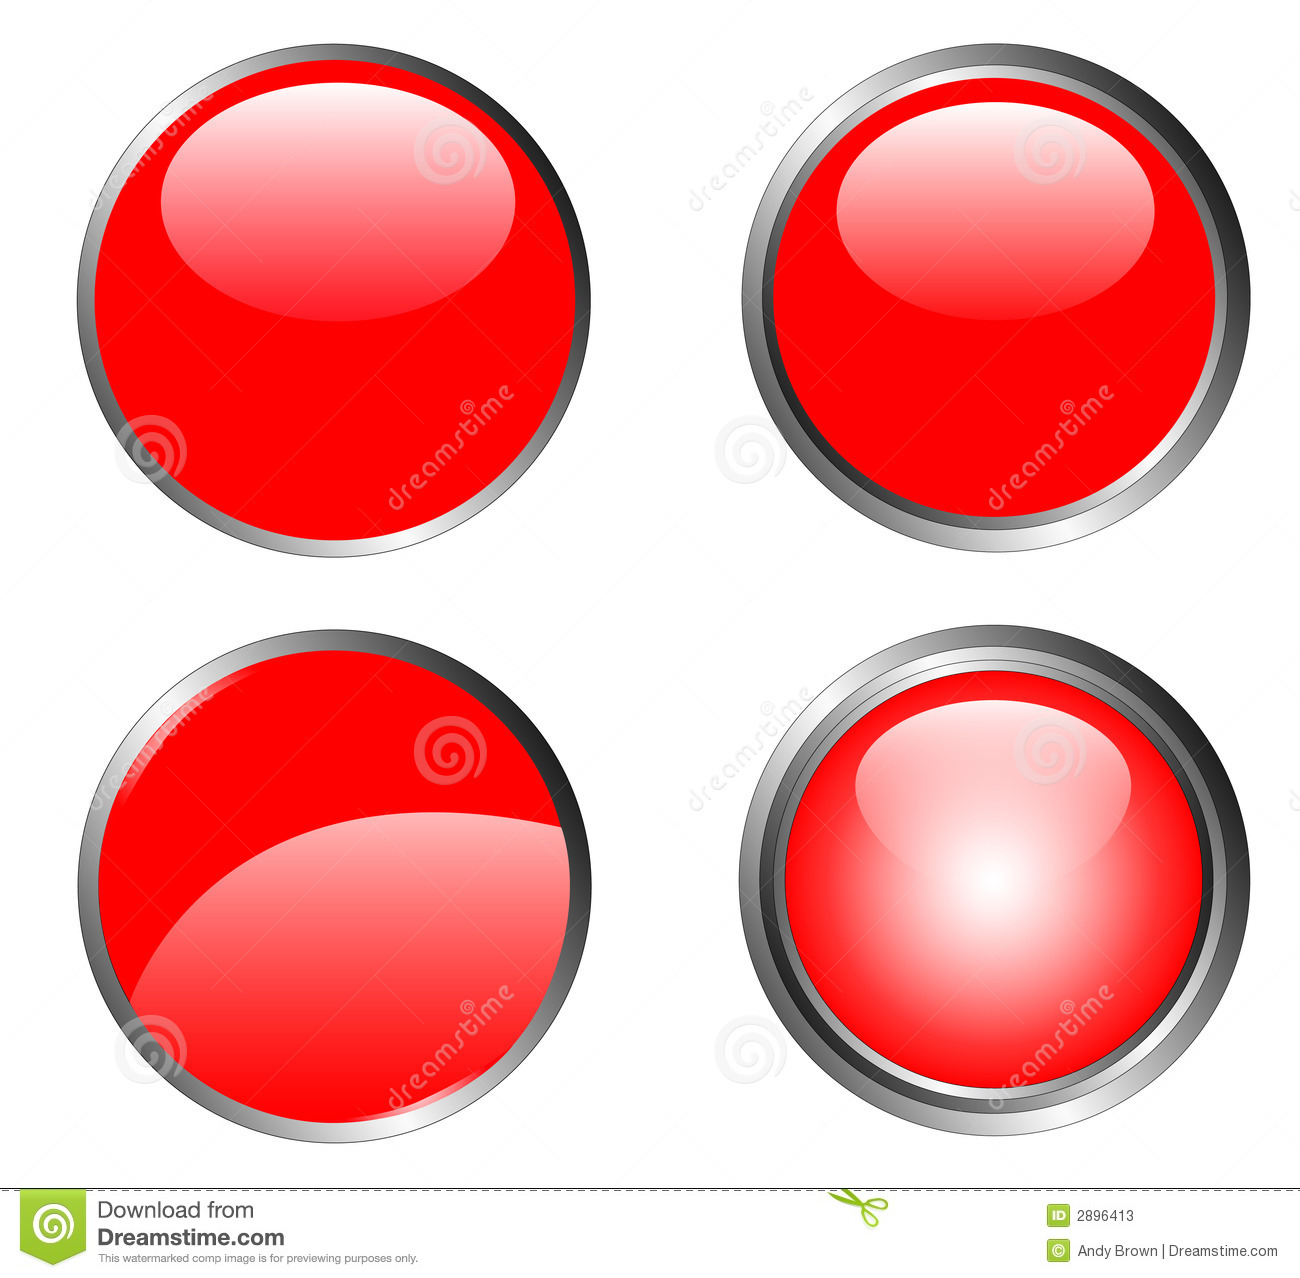 Red Buttons Backgrounds on Wallpapers Vista